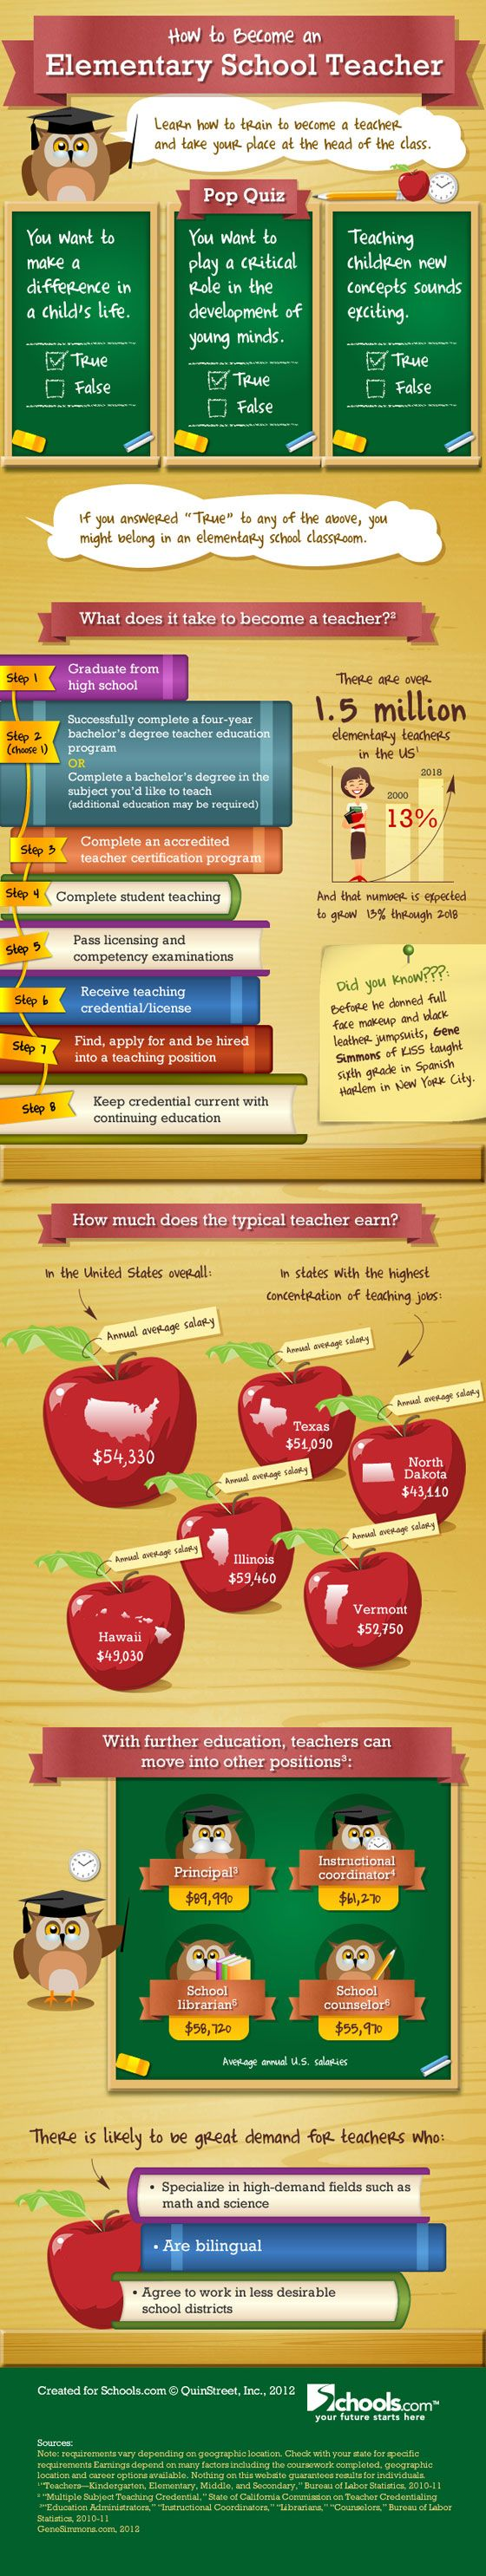 How to become an elementary school teacher! (infographic)